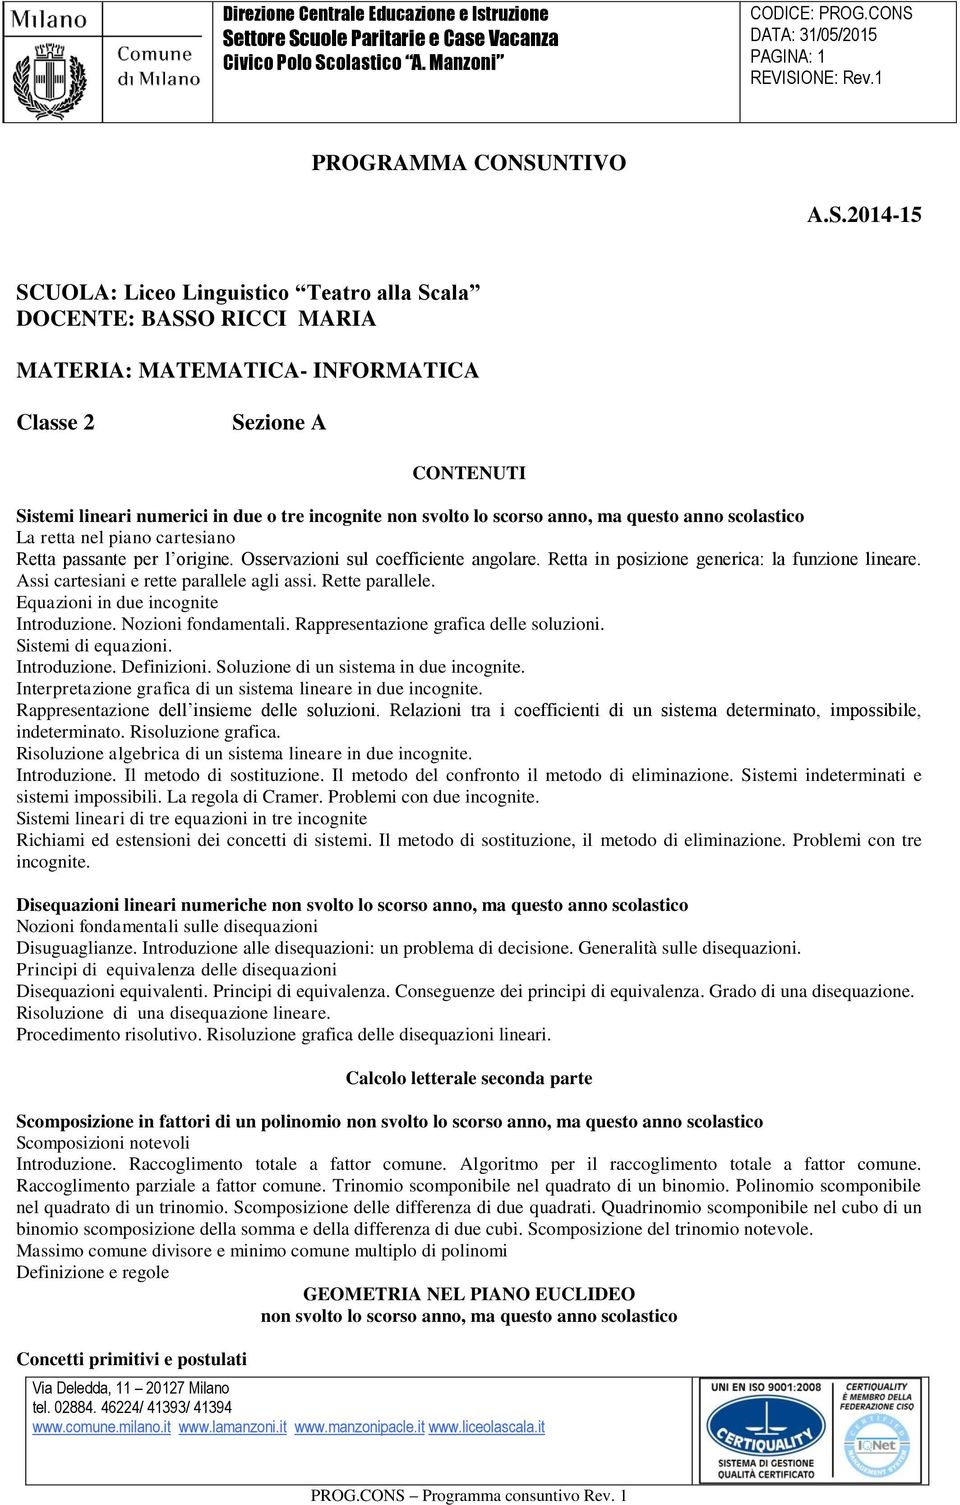 Programma consuntivo pdf for Differenza di due quadrati